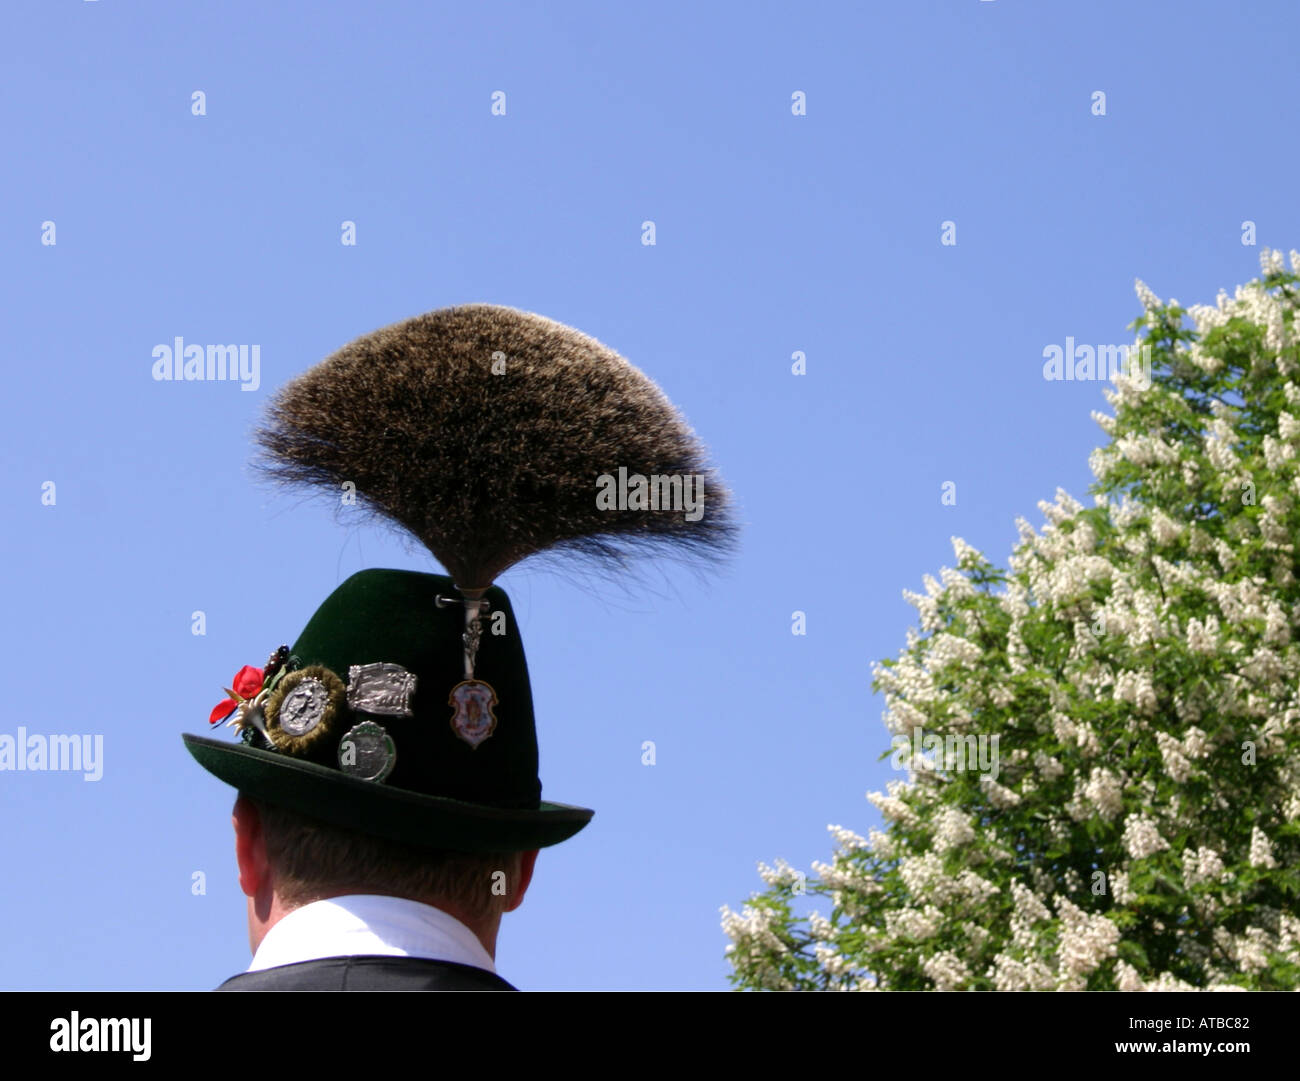 Gamsbart Bavarian traditional hat with feather Munich Bavaria Germany - Stock Image